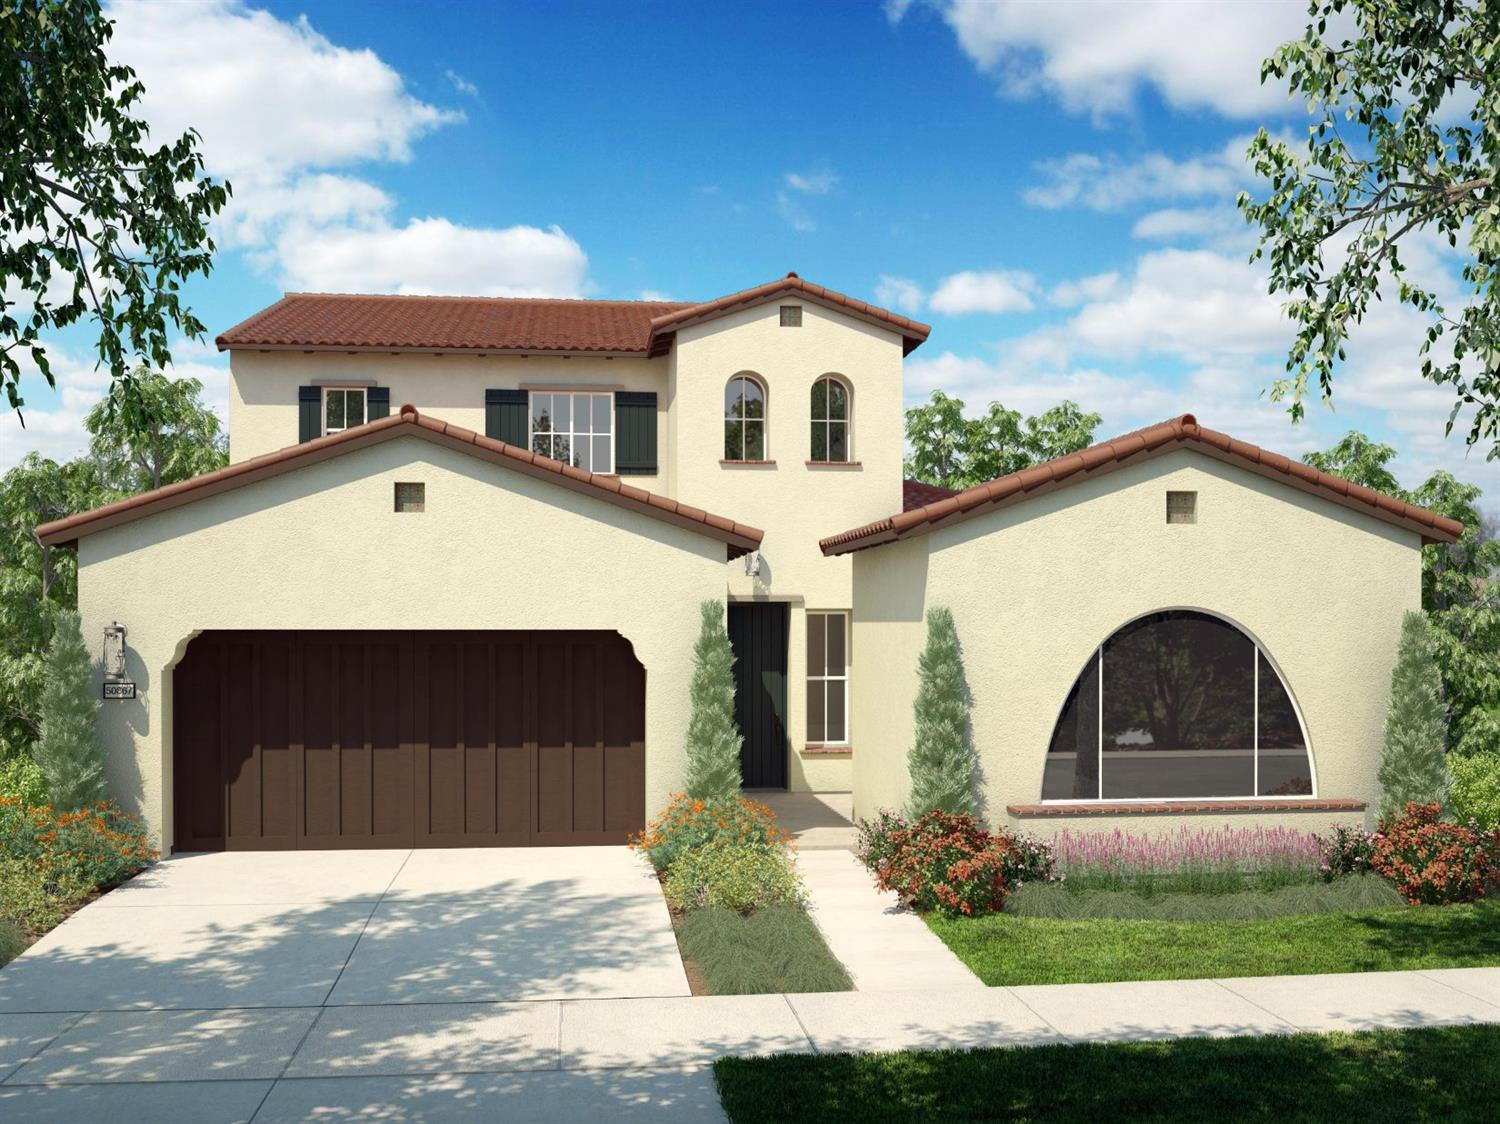 $988,825 - 4Br/4Ba -  for Sale in Davis